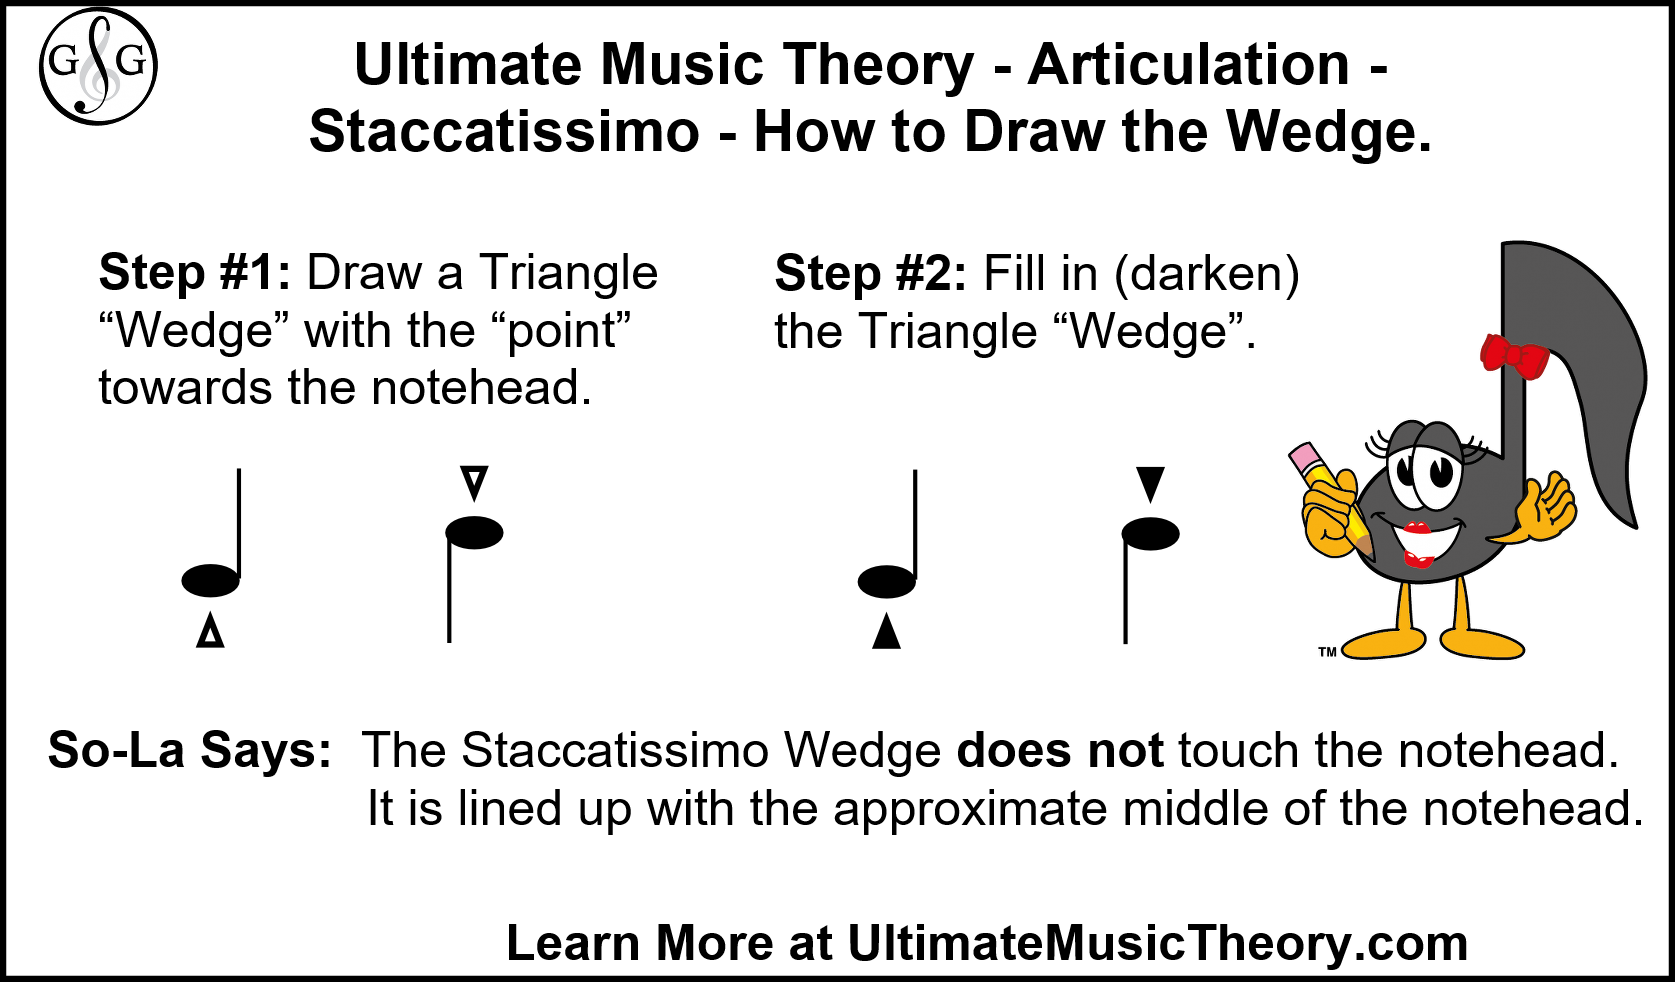 UMT Articulation - Staccatissimo - How to Draw